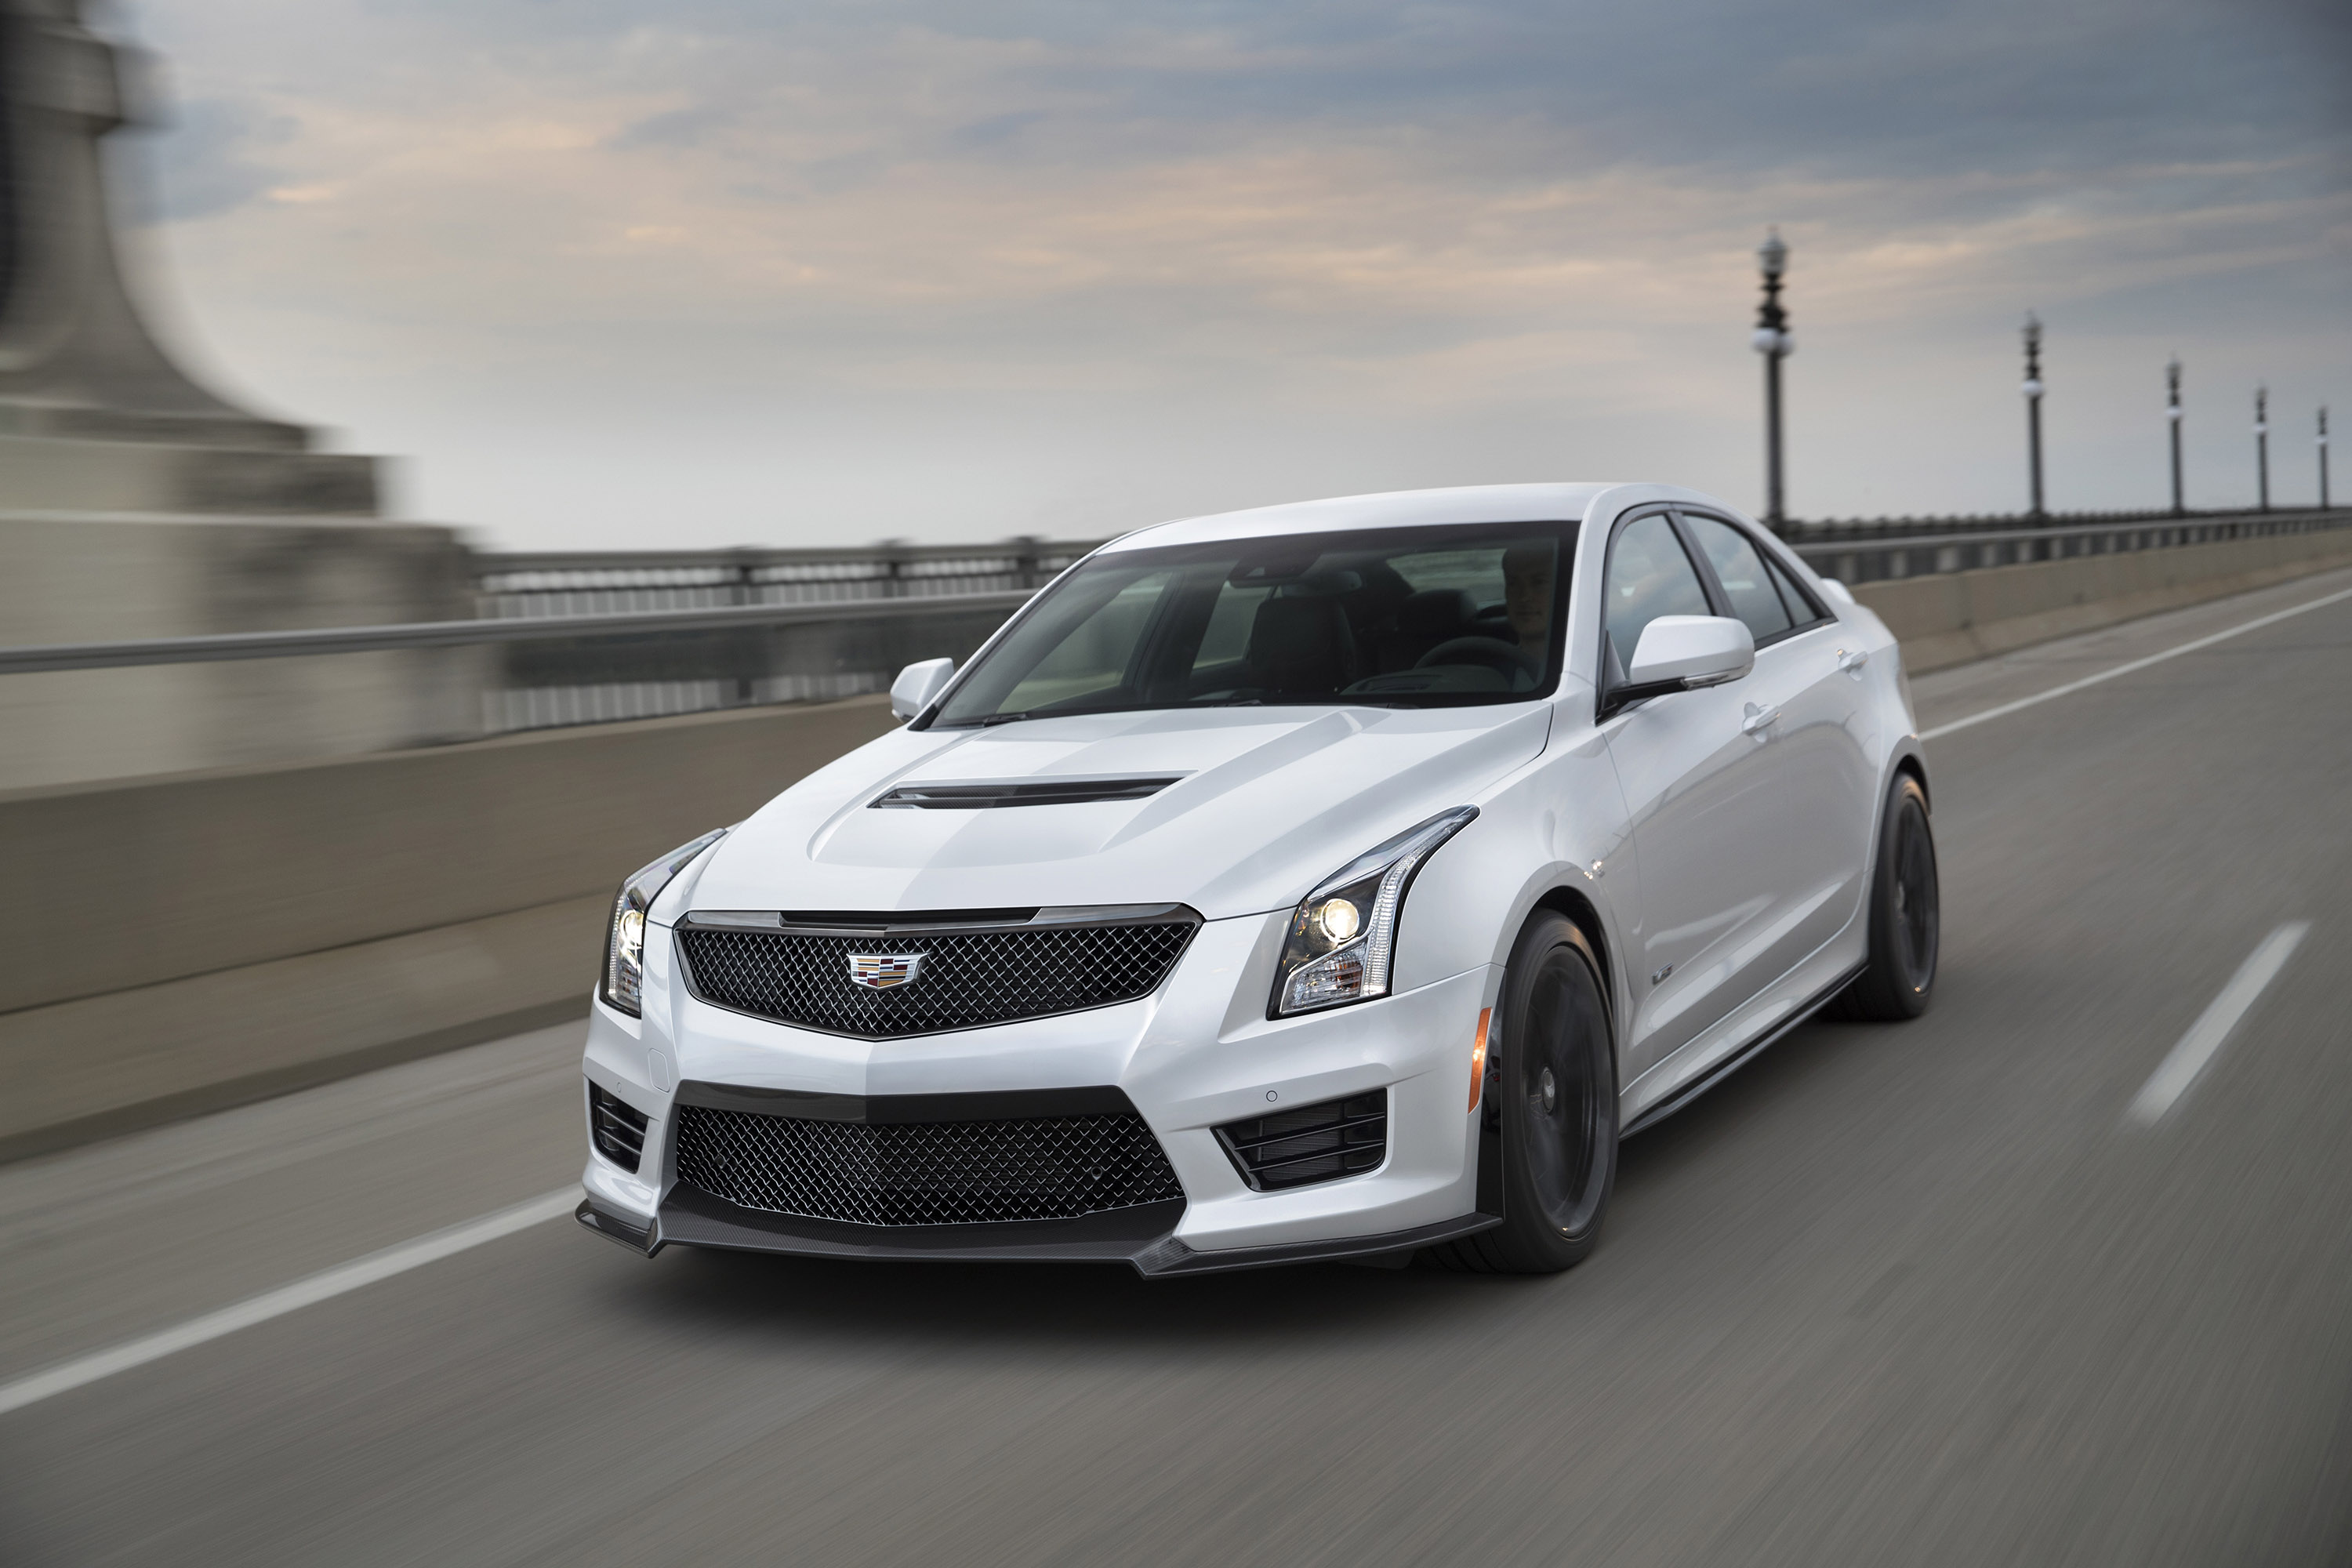 Cadillac ATS-V Coupe exterior specifications